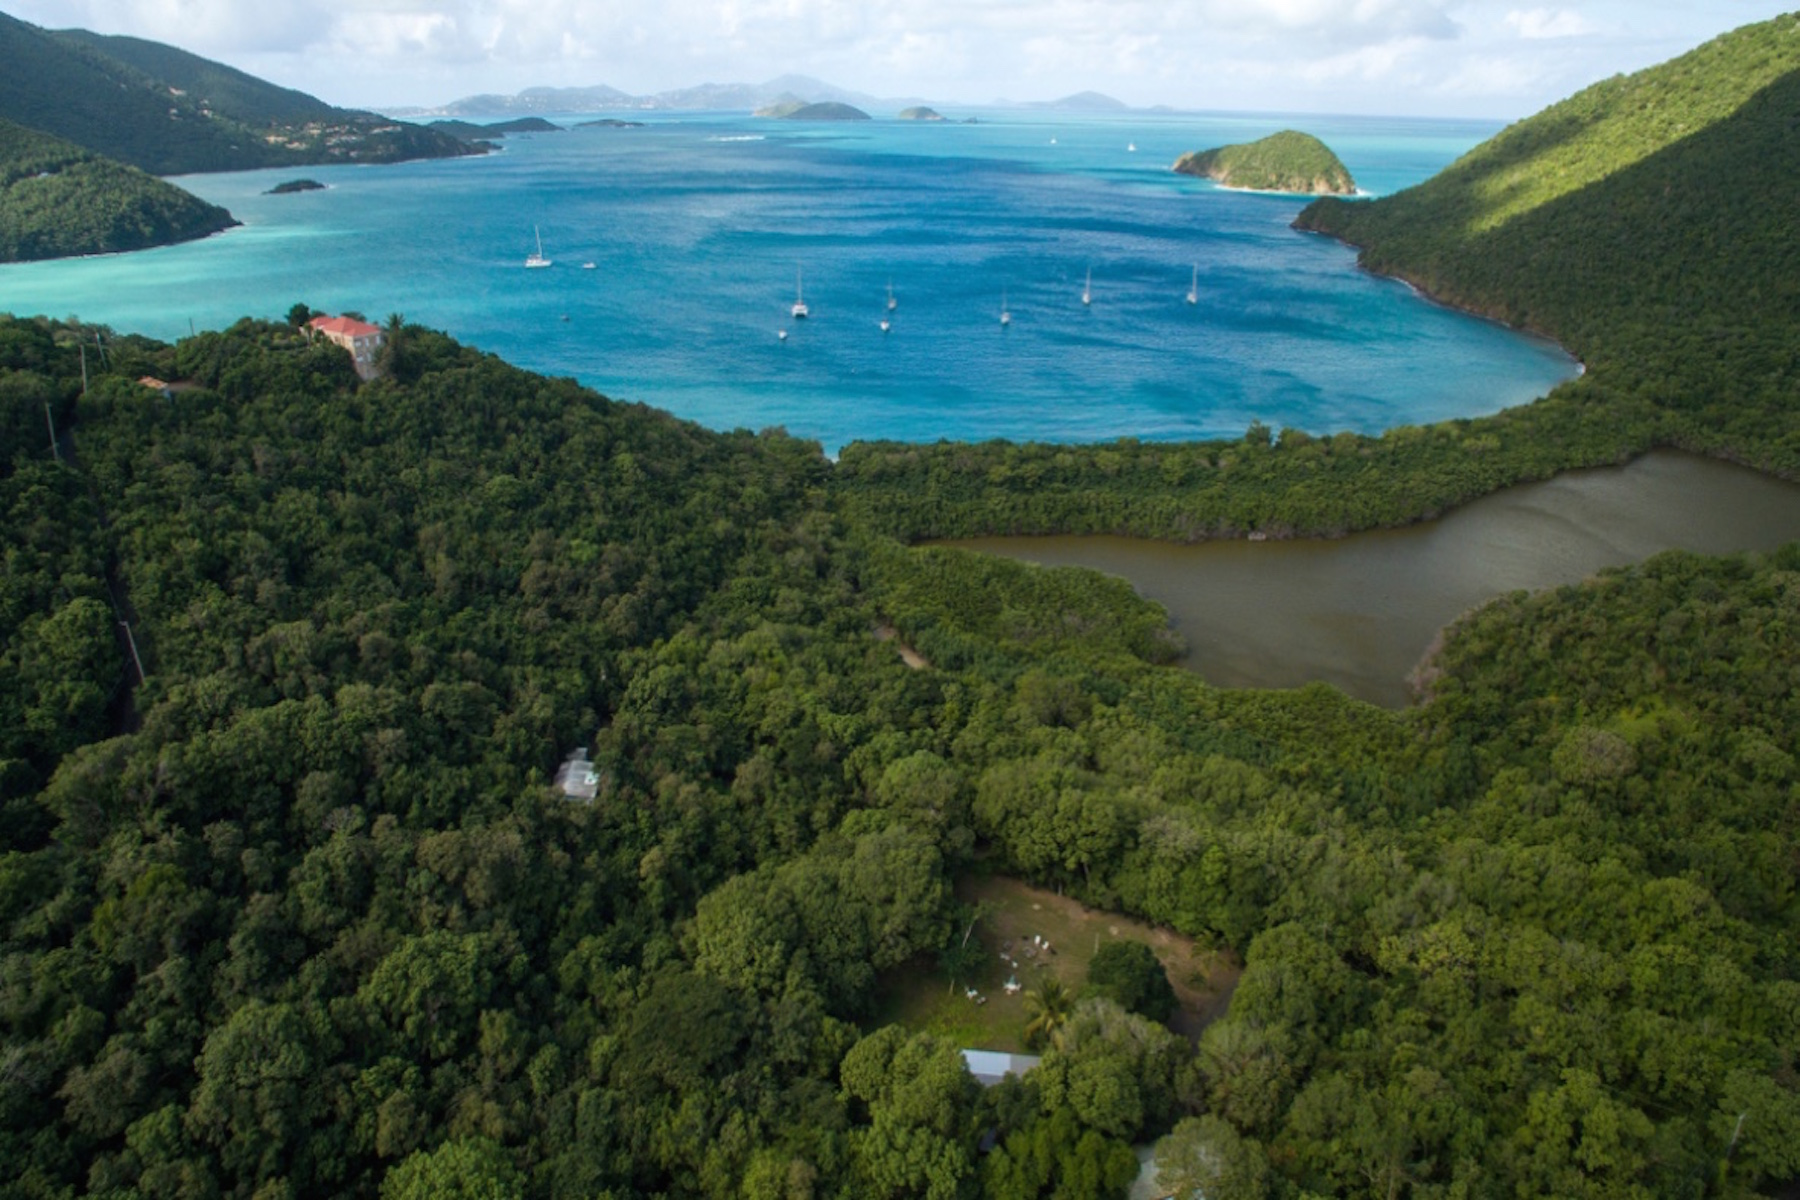 Land for Sale at 4-F & 4F-A Annaberg 4-F & 4F-A Annaberg St John, Virgin Islands 00830 United States Virgin Islands